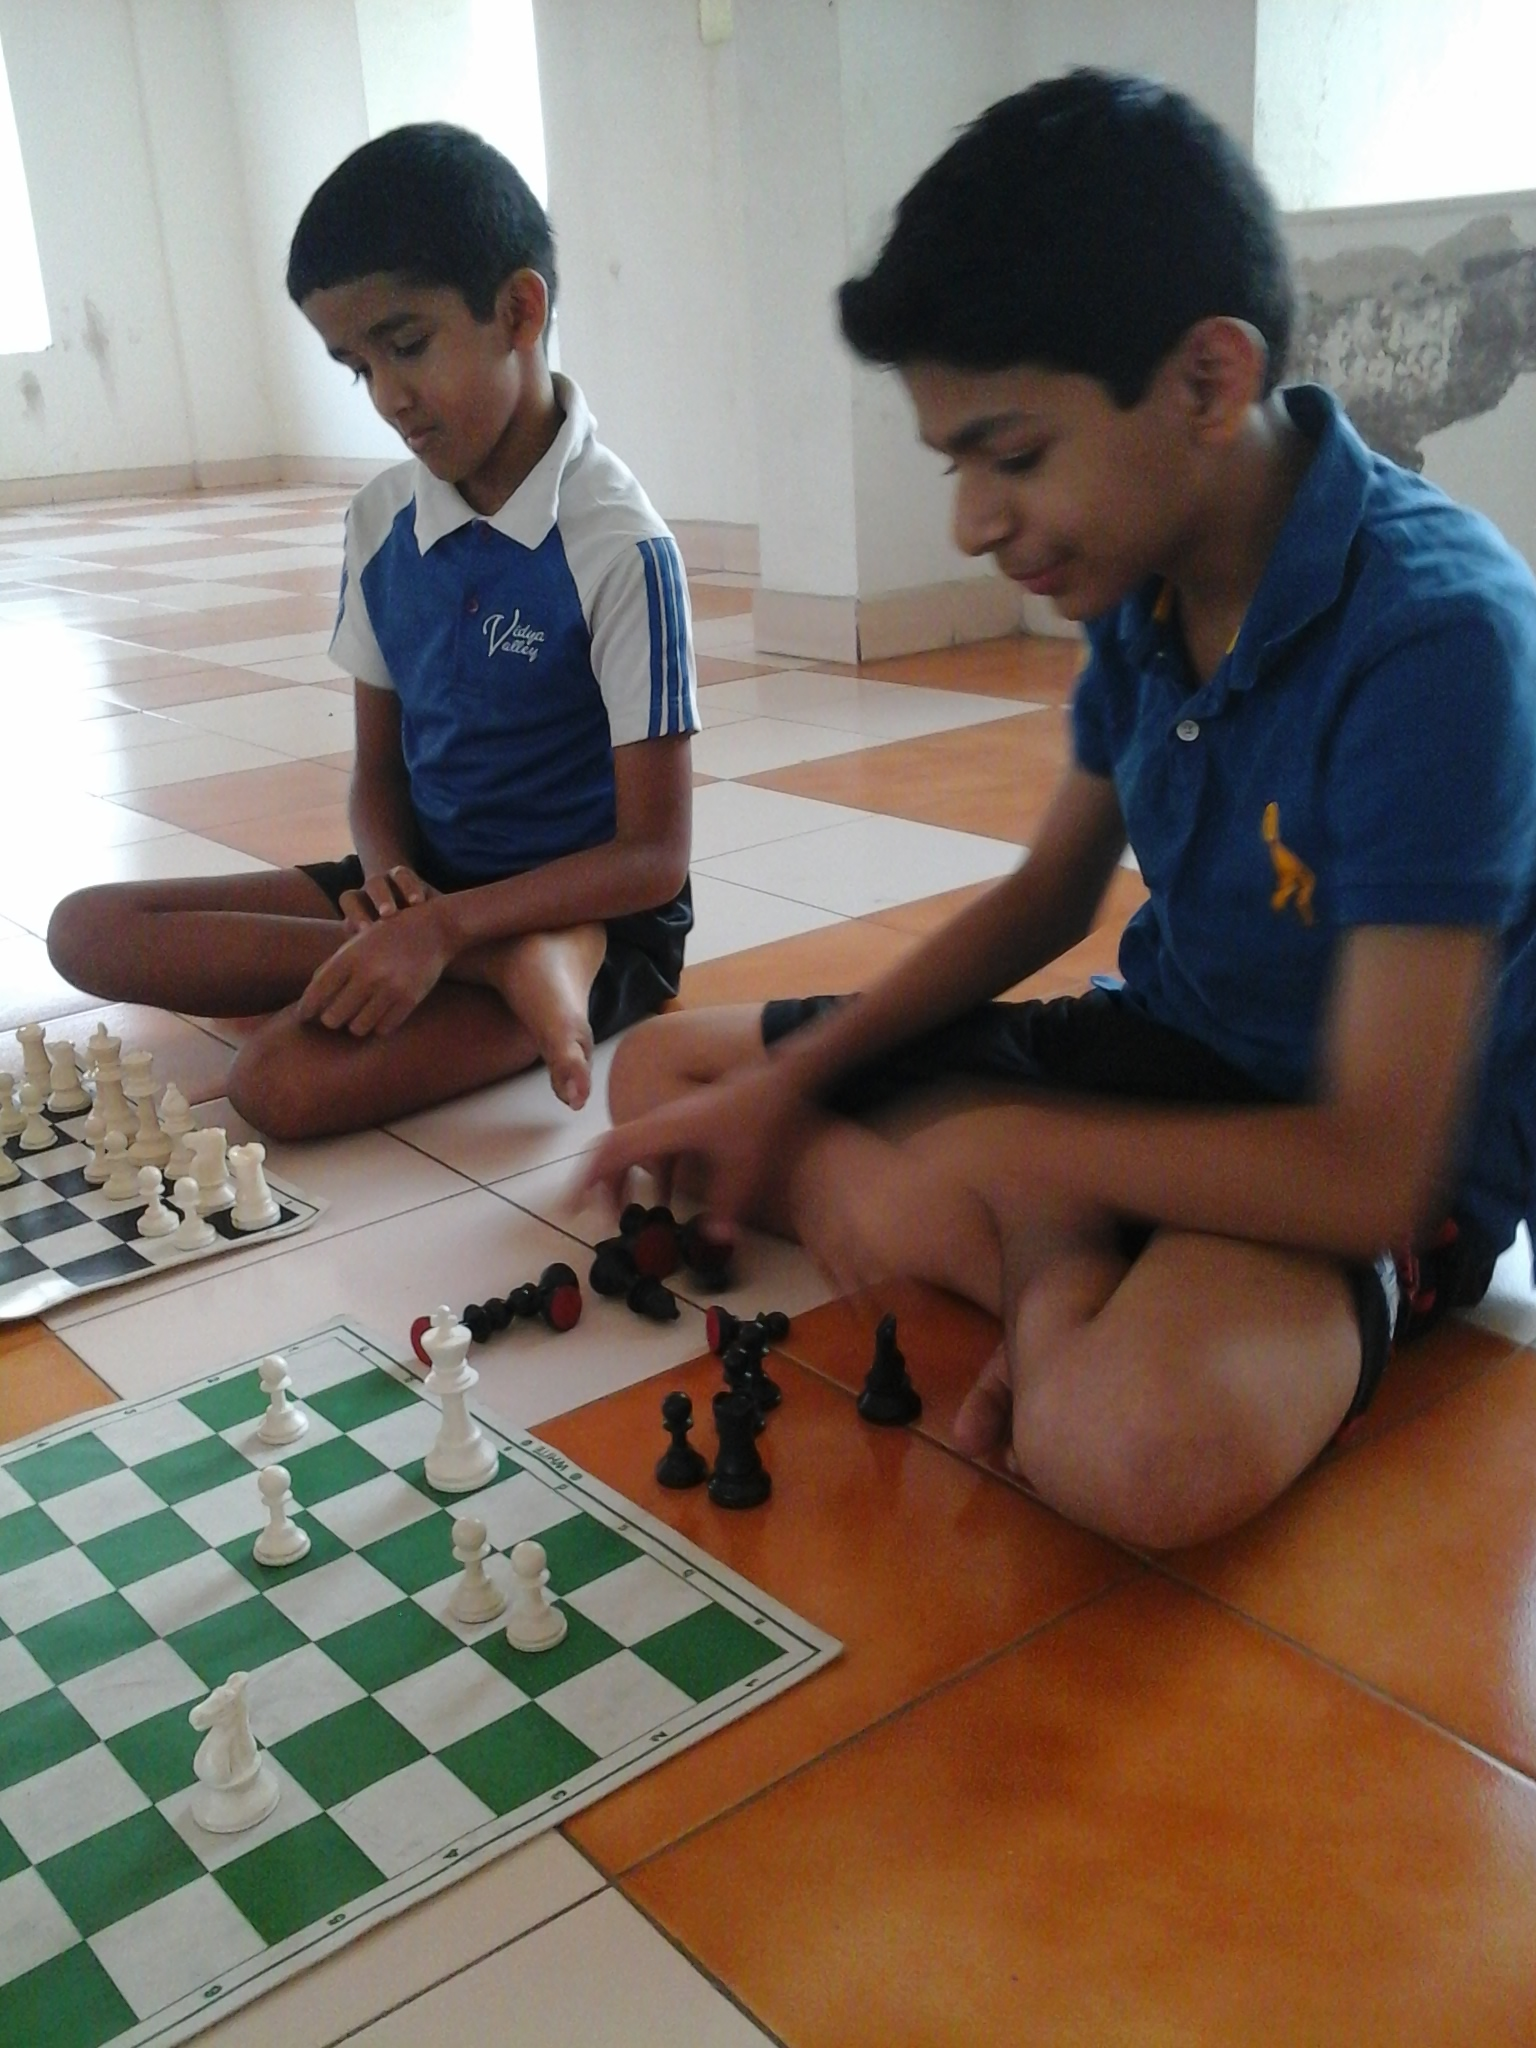 start group chess class in your society or home